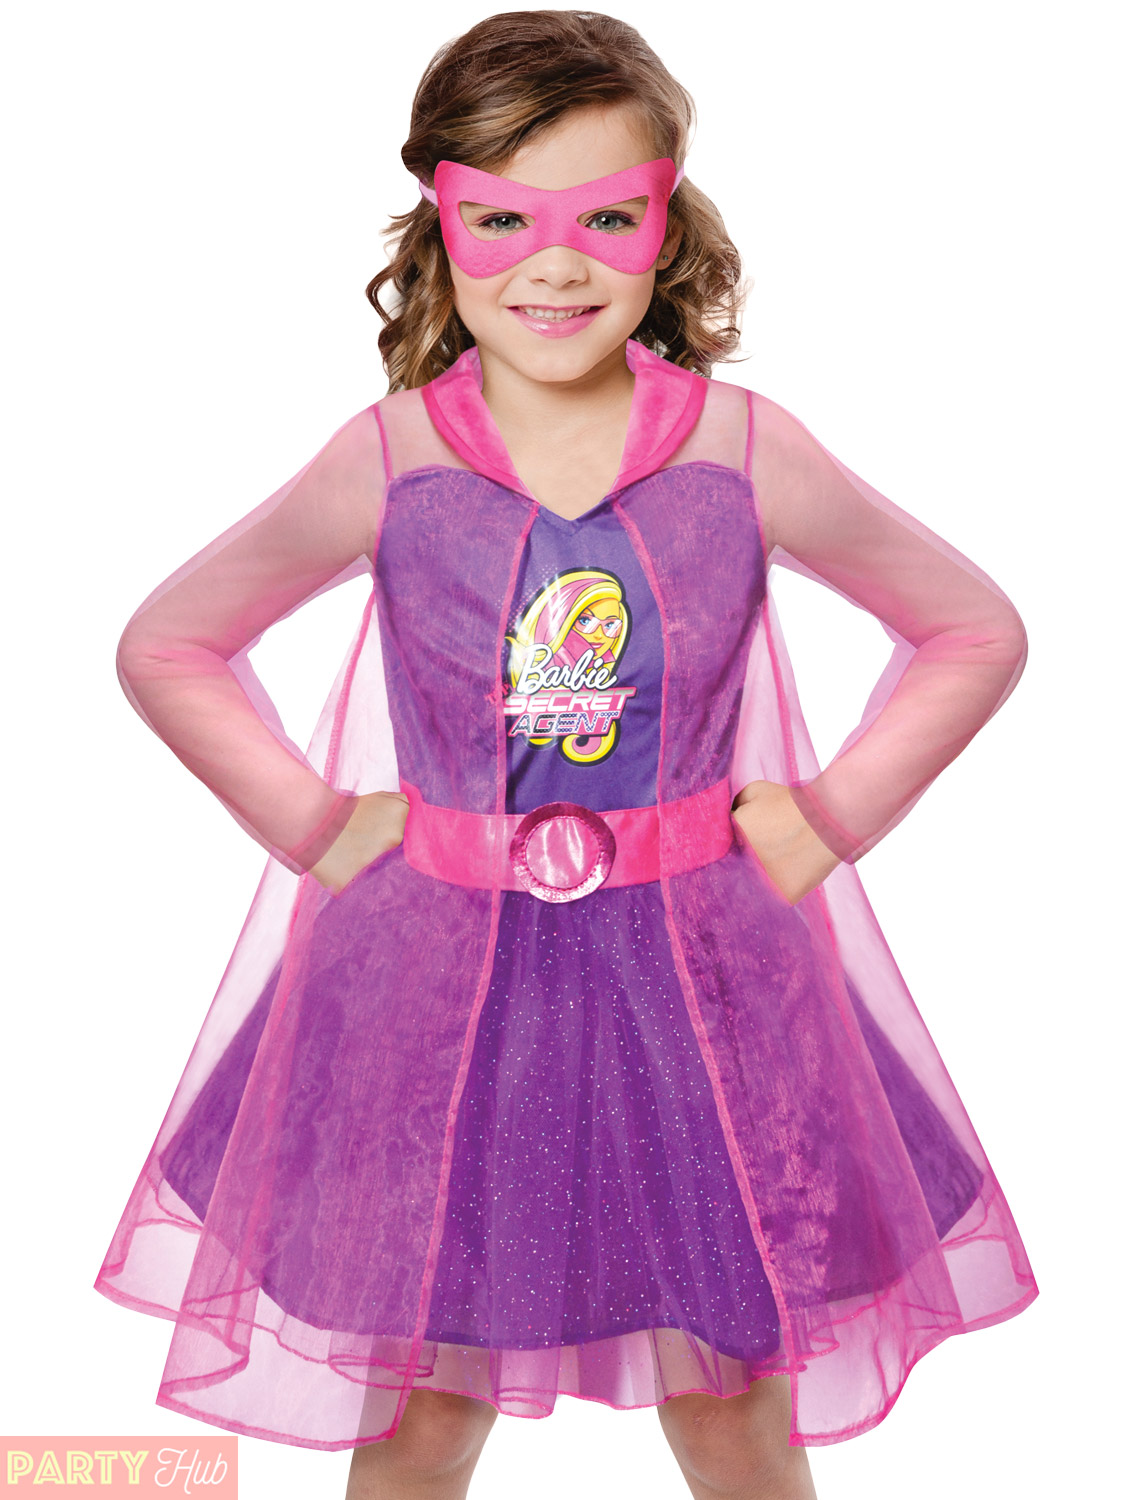 Childrens Prince and Princess Costumes Fancy Dress for Kids, Boys and Girls. Skip to Navigation. Call +44 (0) ; Childrens Prince and Princess Costumes Fancy Dress for Kids, Boys and Girls. Free UK Delivery on all Childrens Fancy Dress. Costumechest Fancy Dress Clothing & Accessories Wholesale & Retail Sales. Items | cost View and.